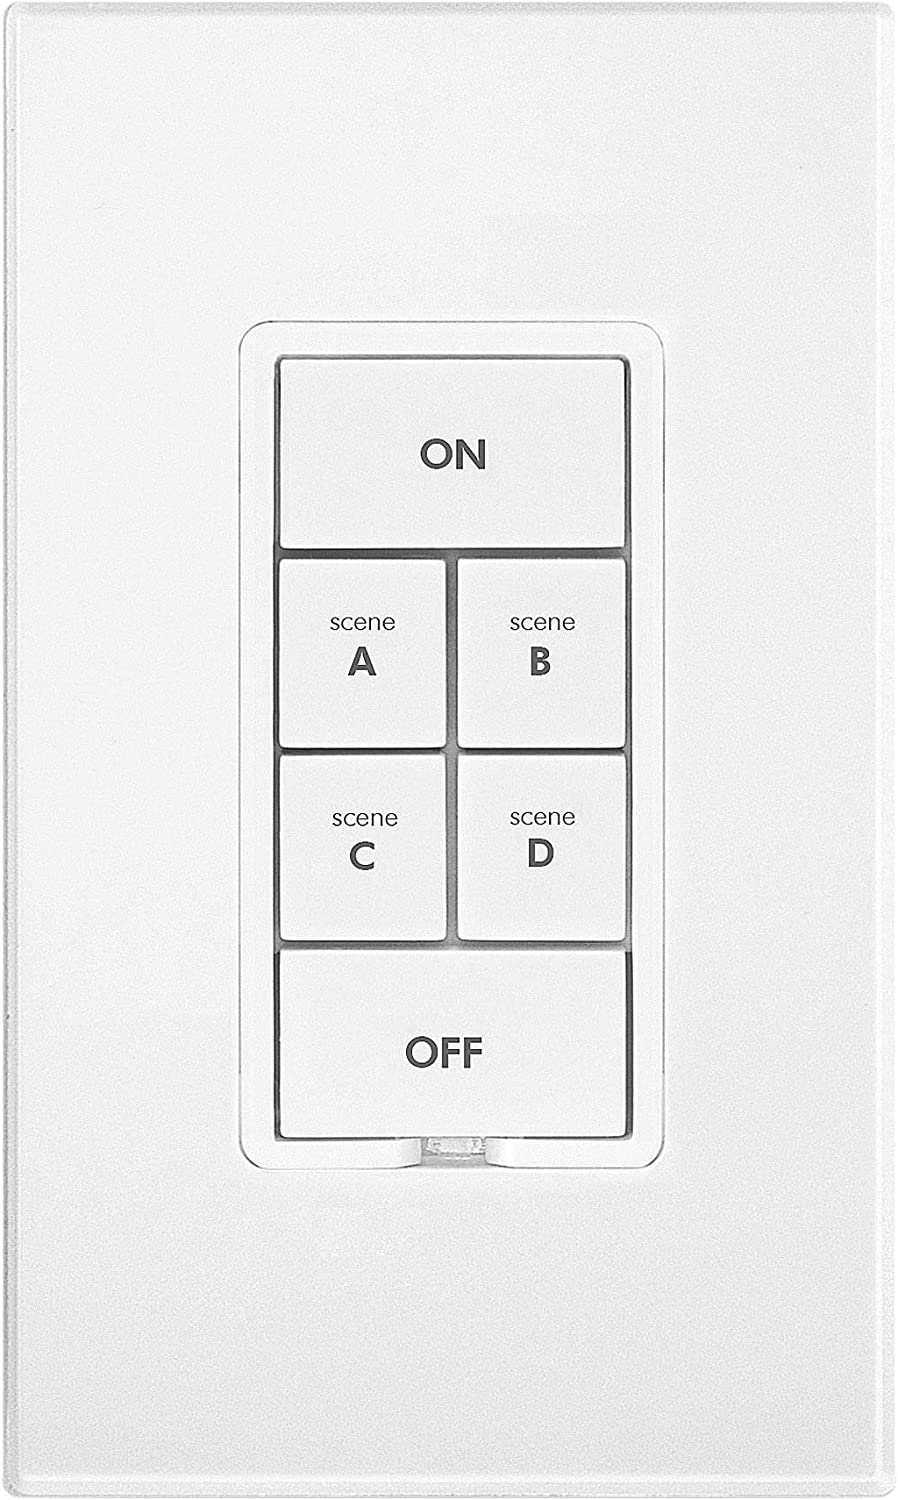 Insteon Smart On/Off 6-Button Keypad, KeypadLinc In-Wall Controller, 2487S (White) - Insteon Hub required for voice control with Alexa & Google Assistant